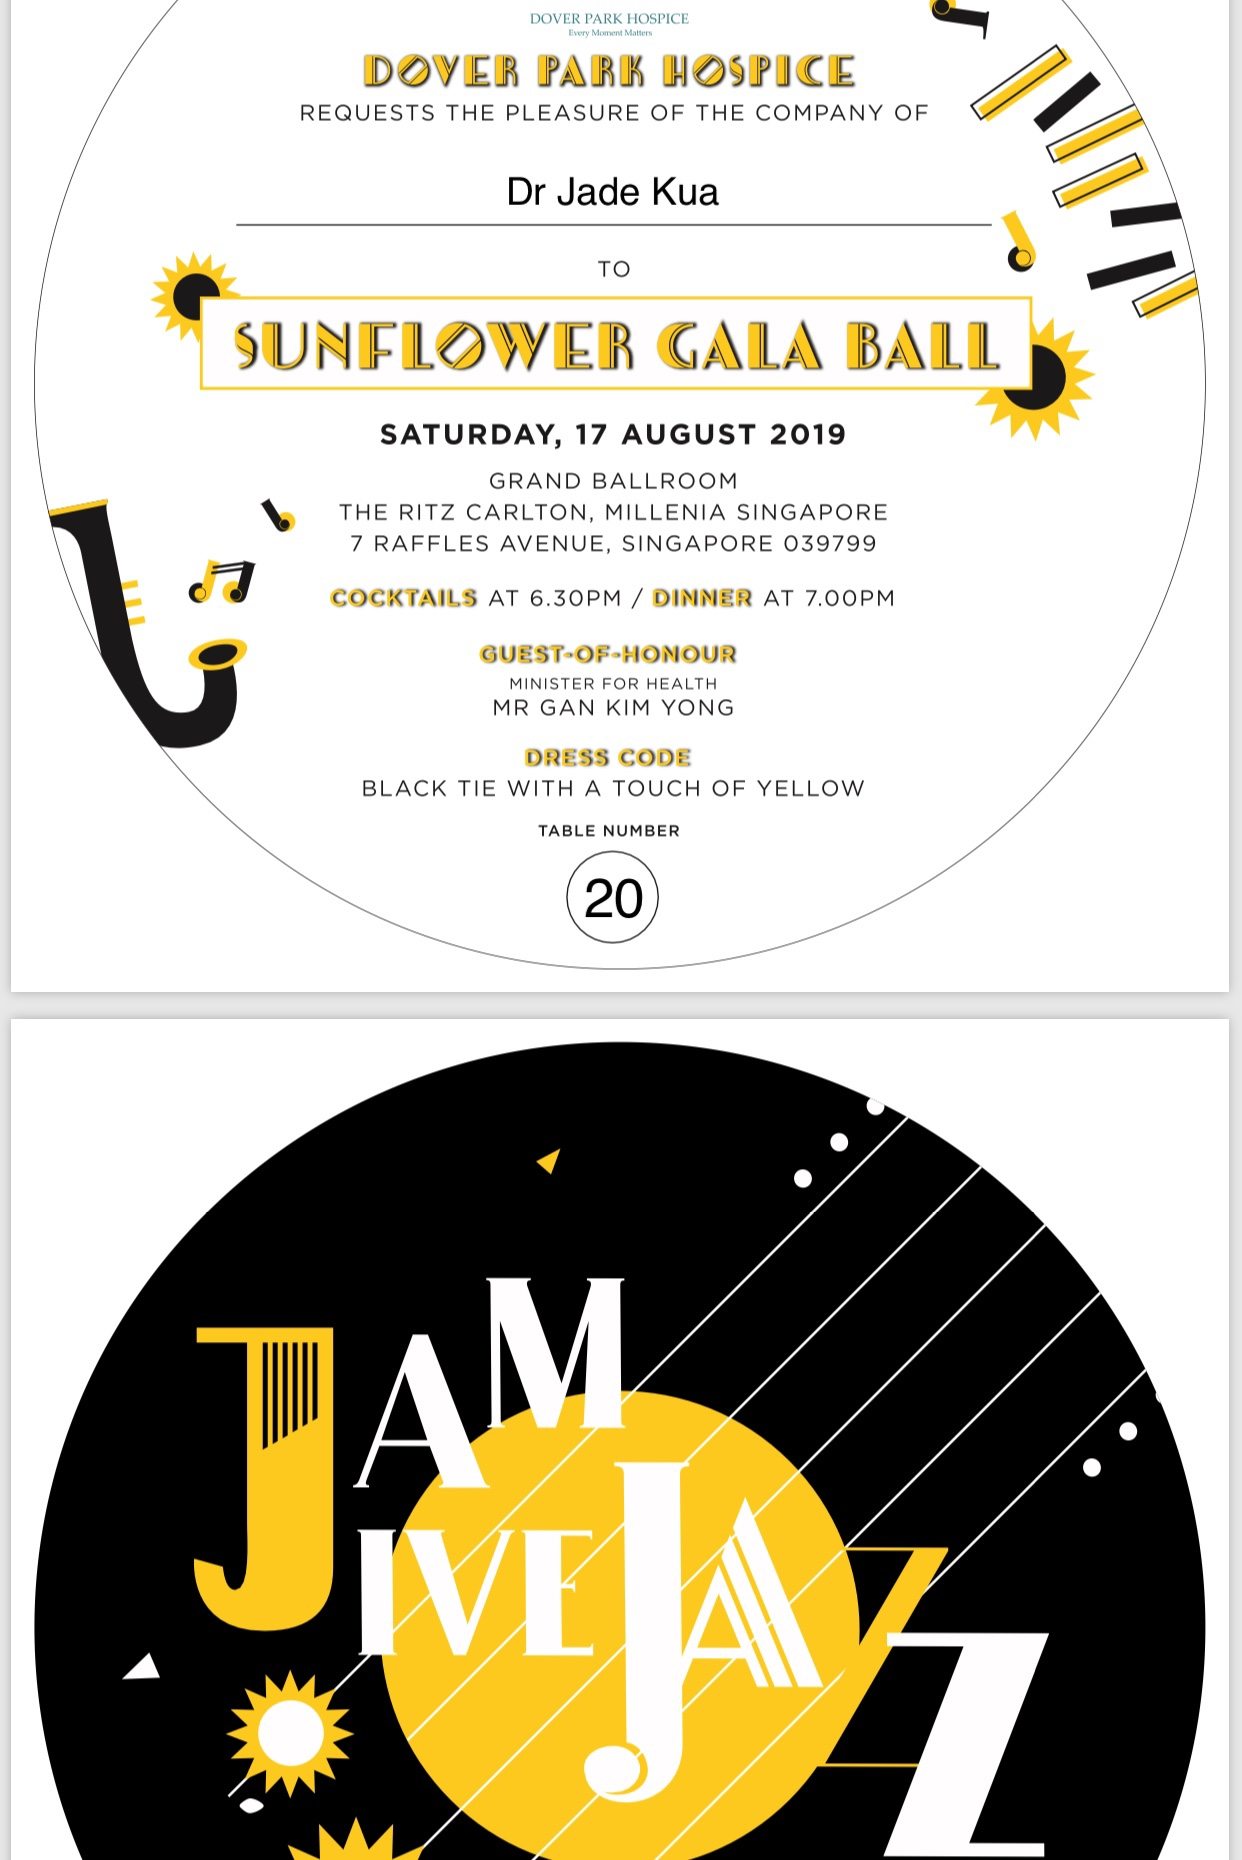 The DPH gala ball invitation